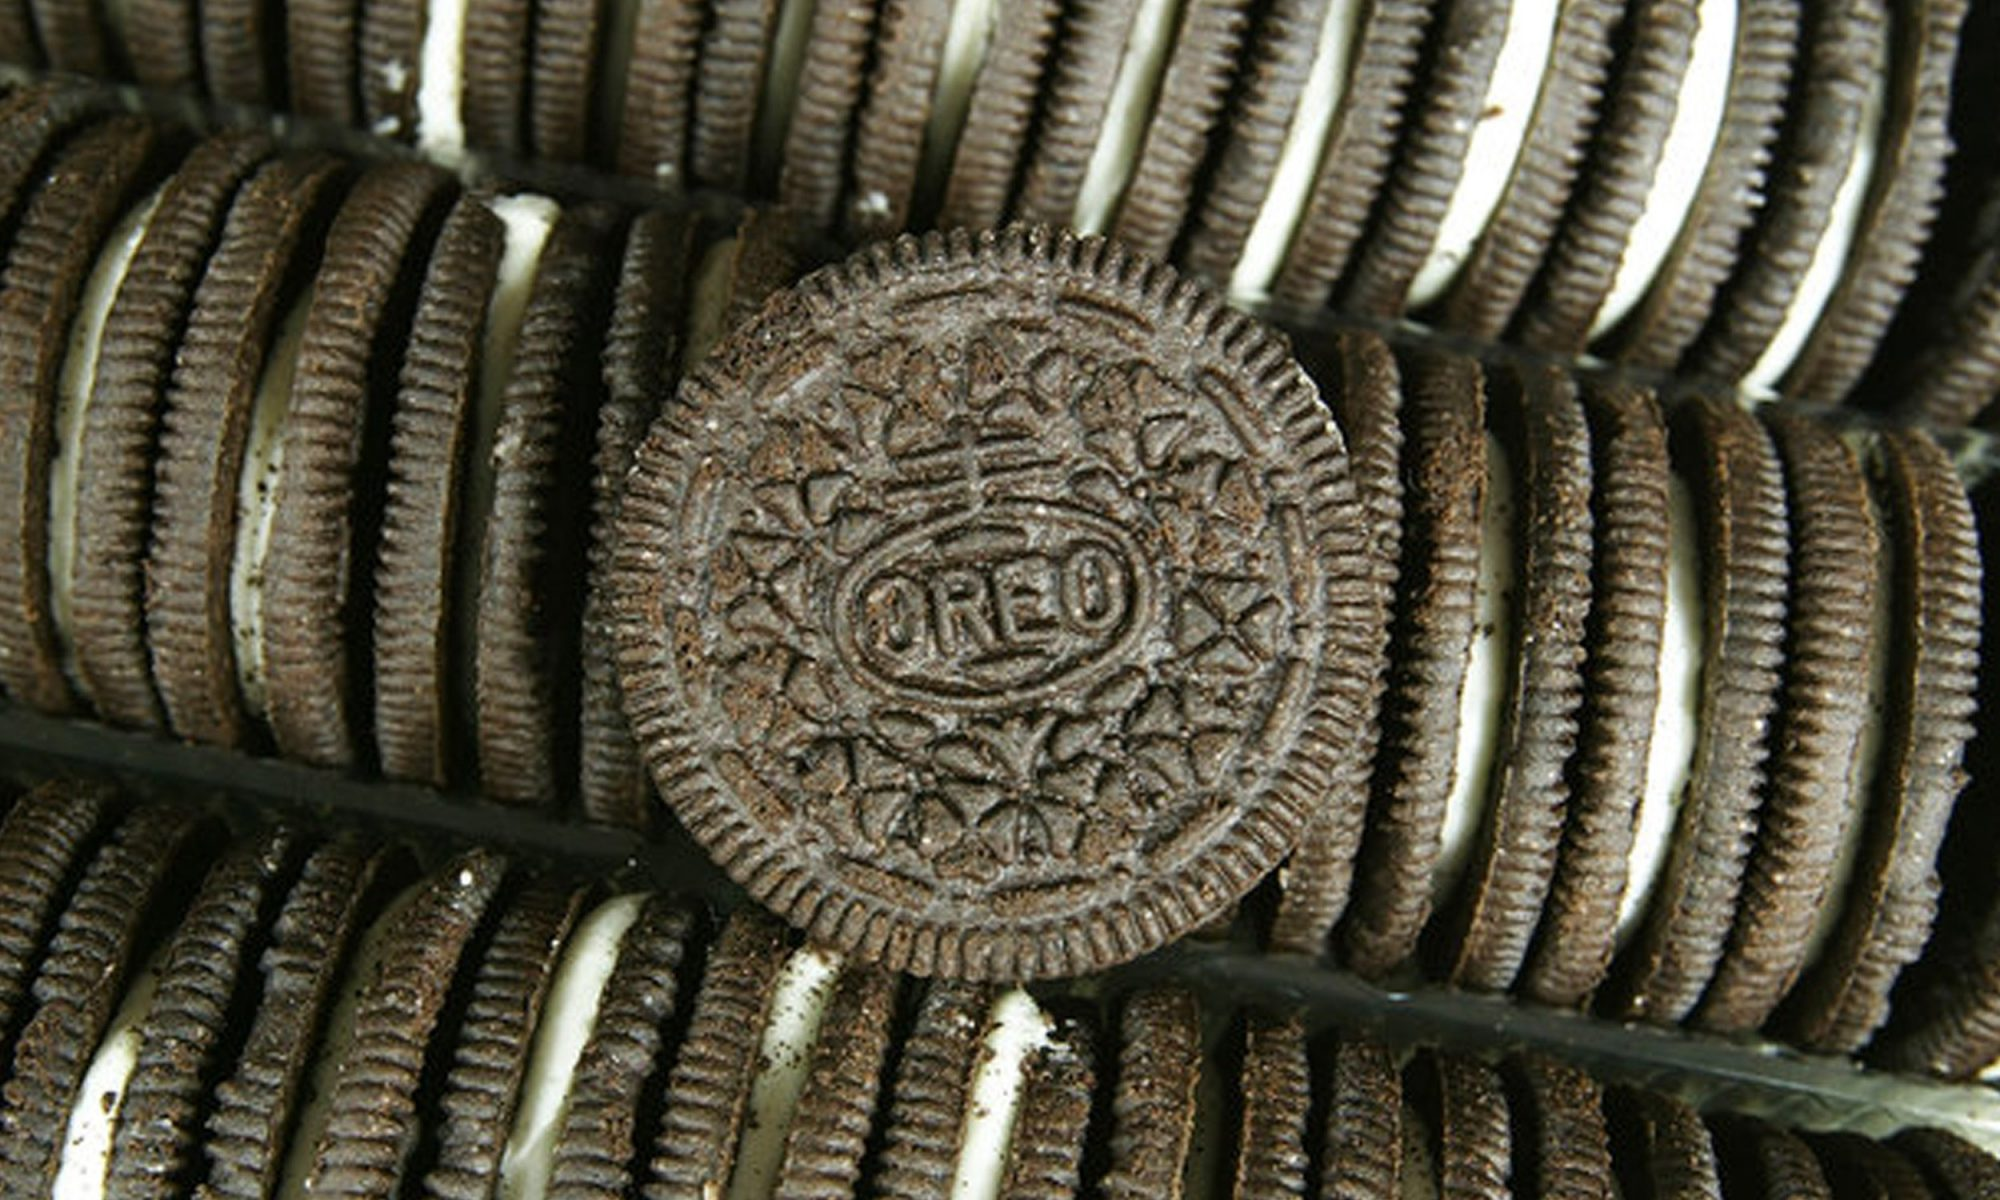 EC: For Their Next Trick, Oreos Will Make Candy Canes